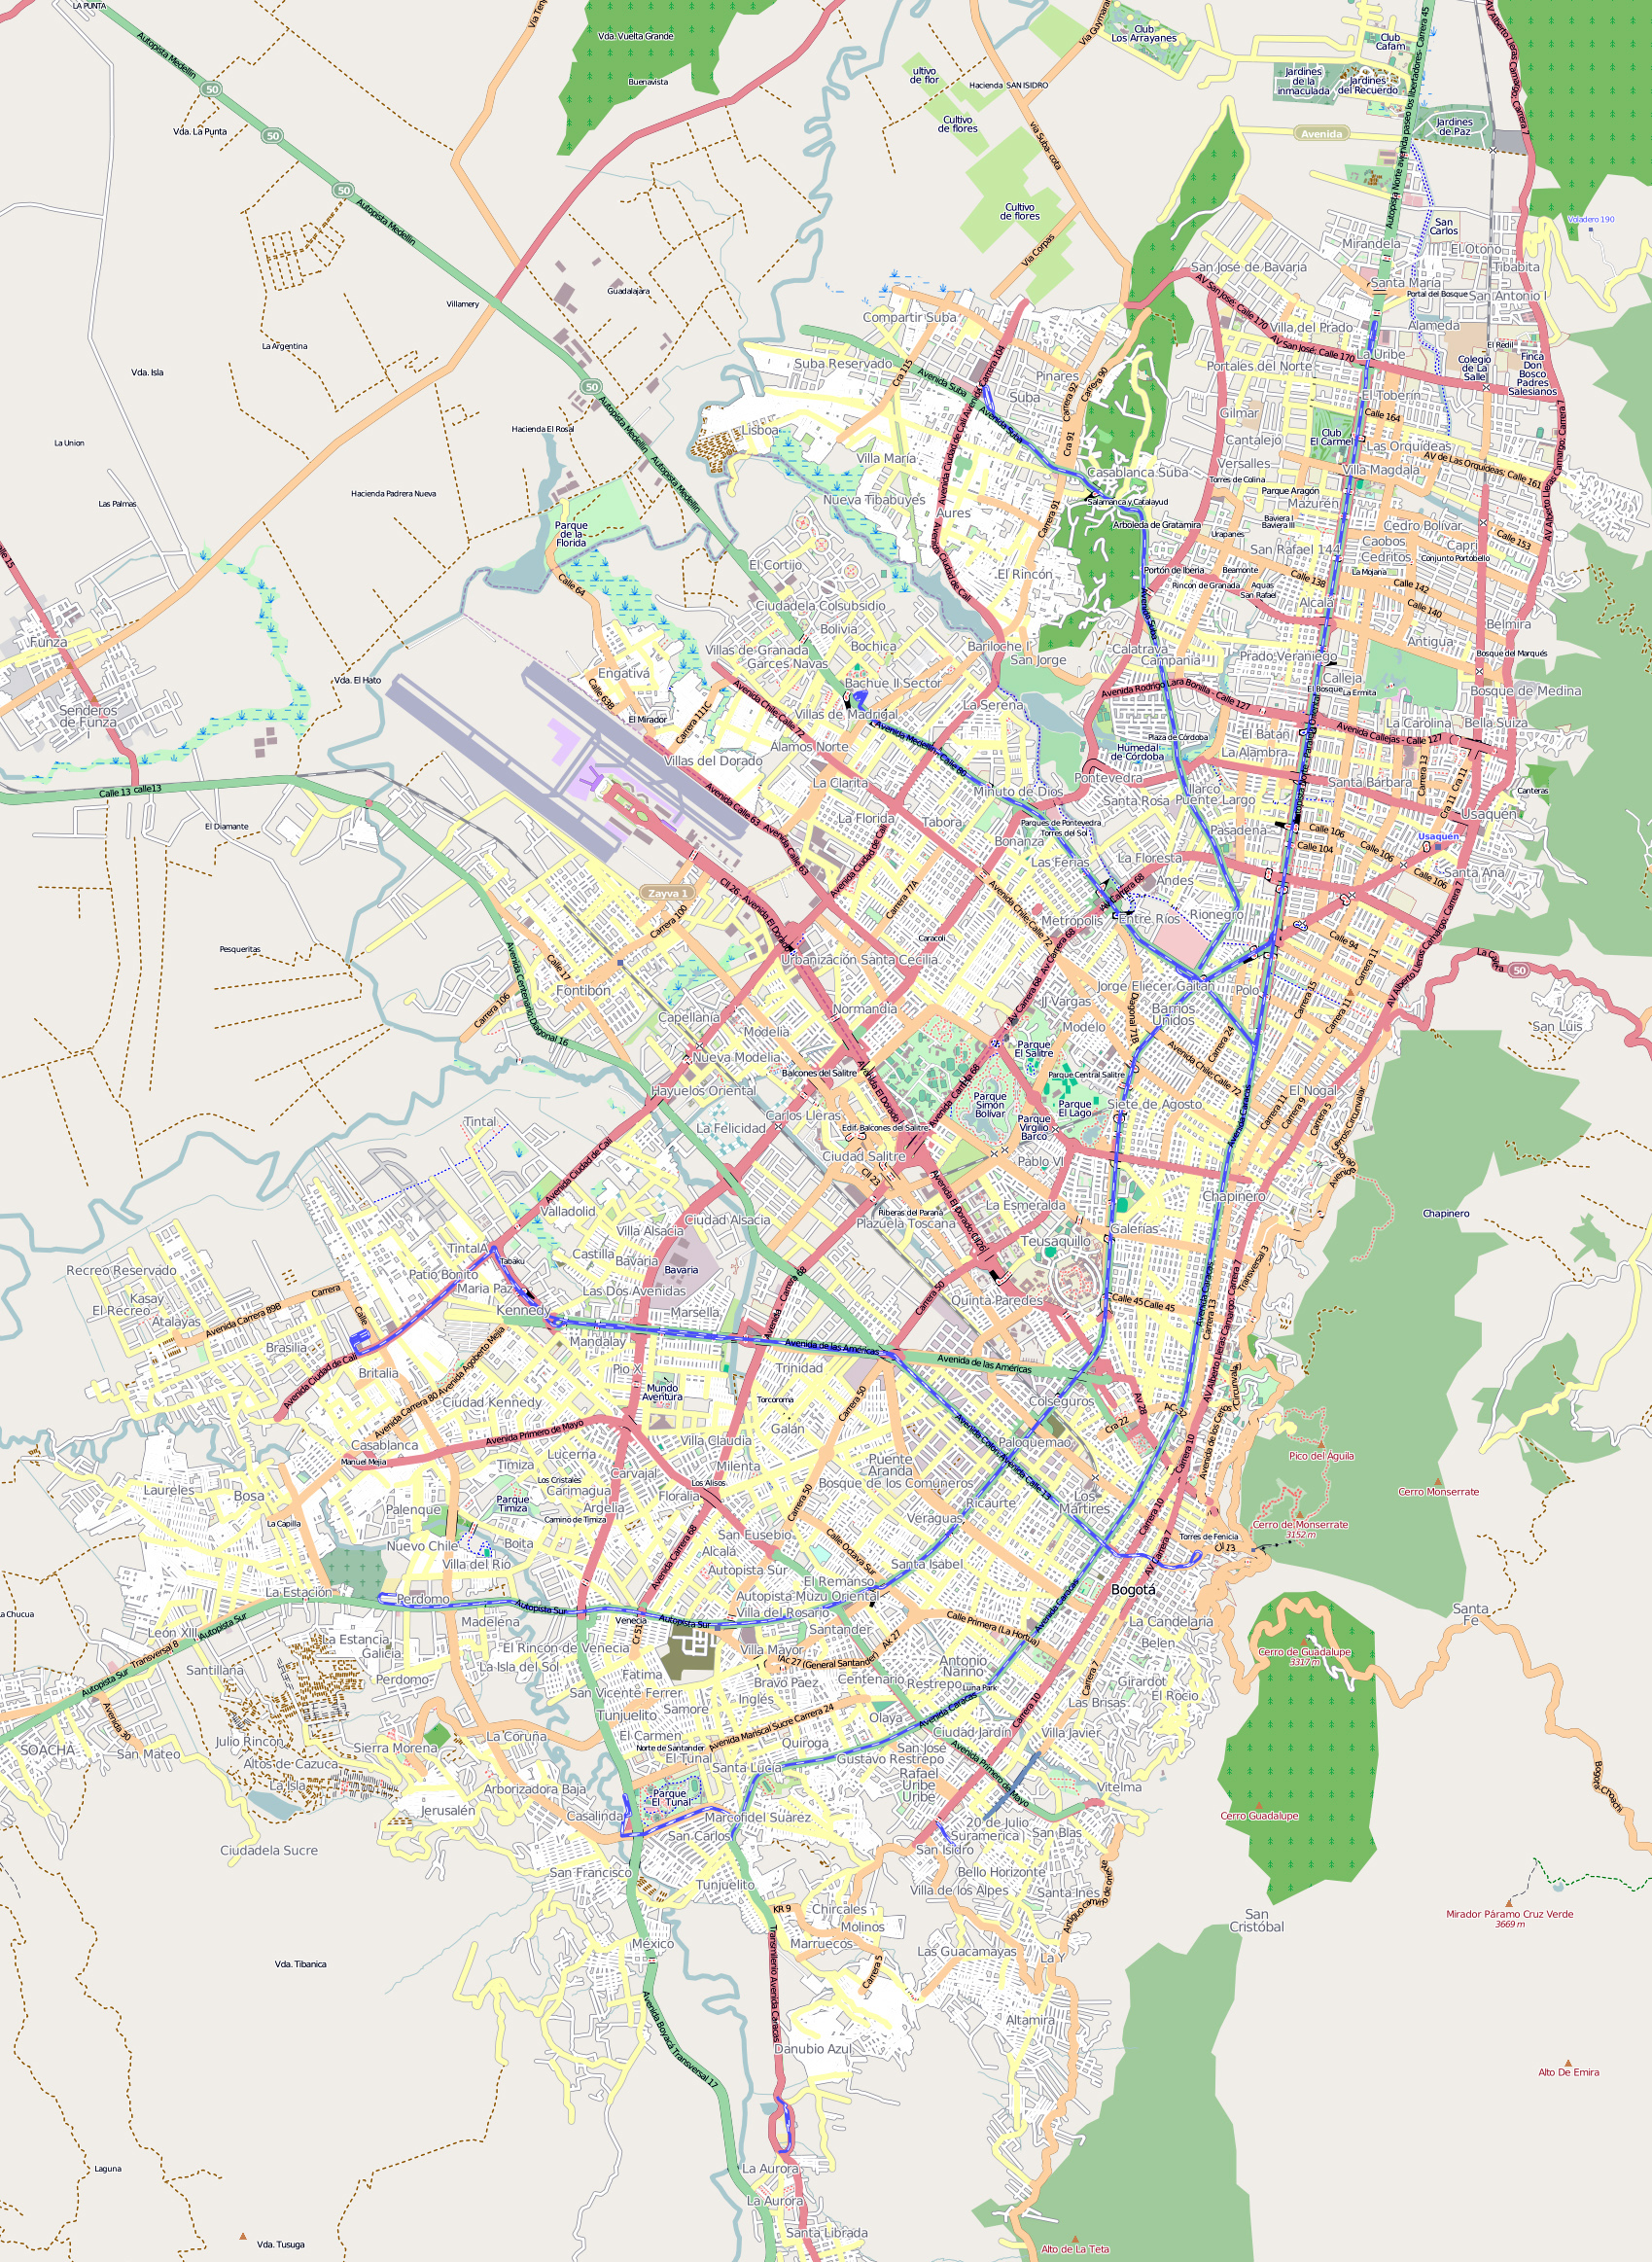 Detailed Road Map Of Bogota City Bogota Colombia South - South america road map